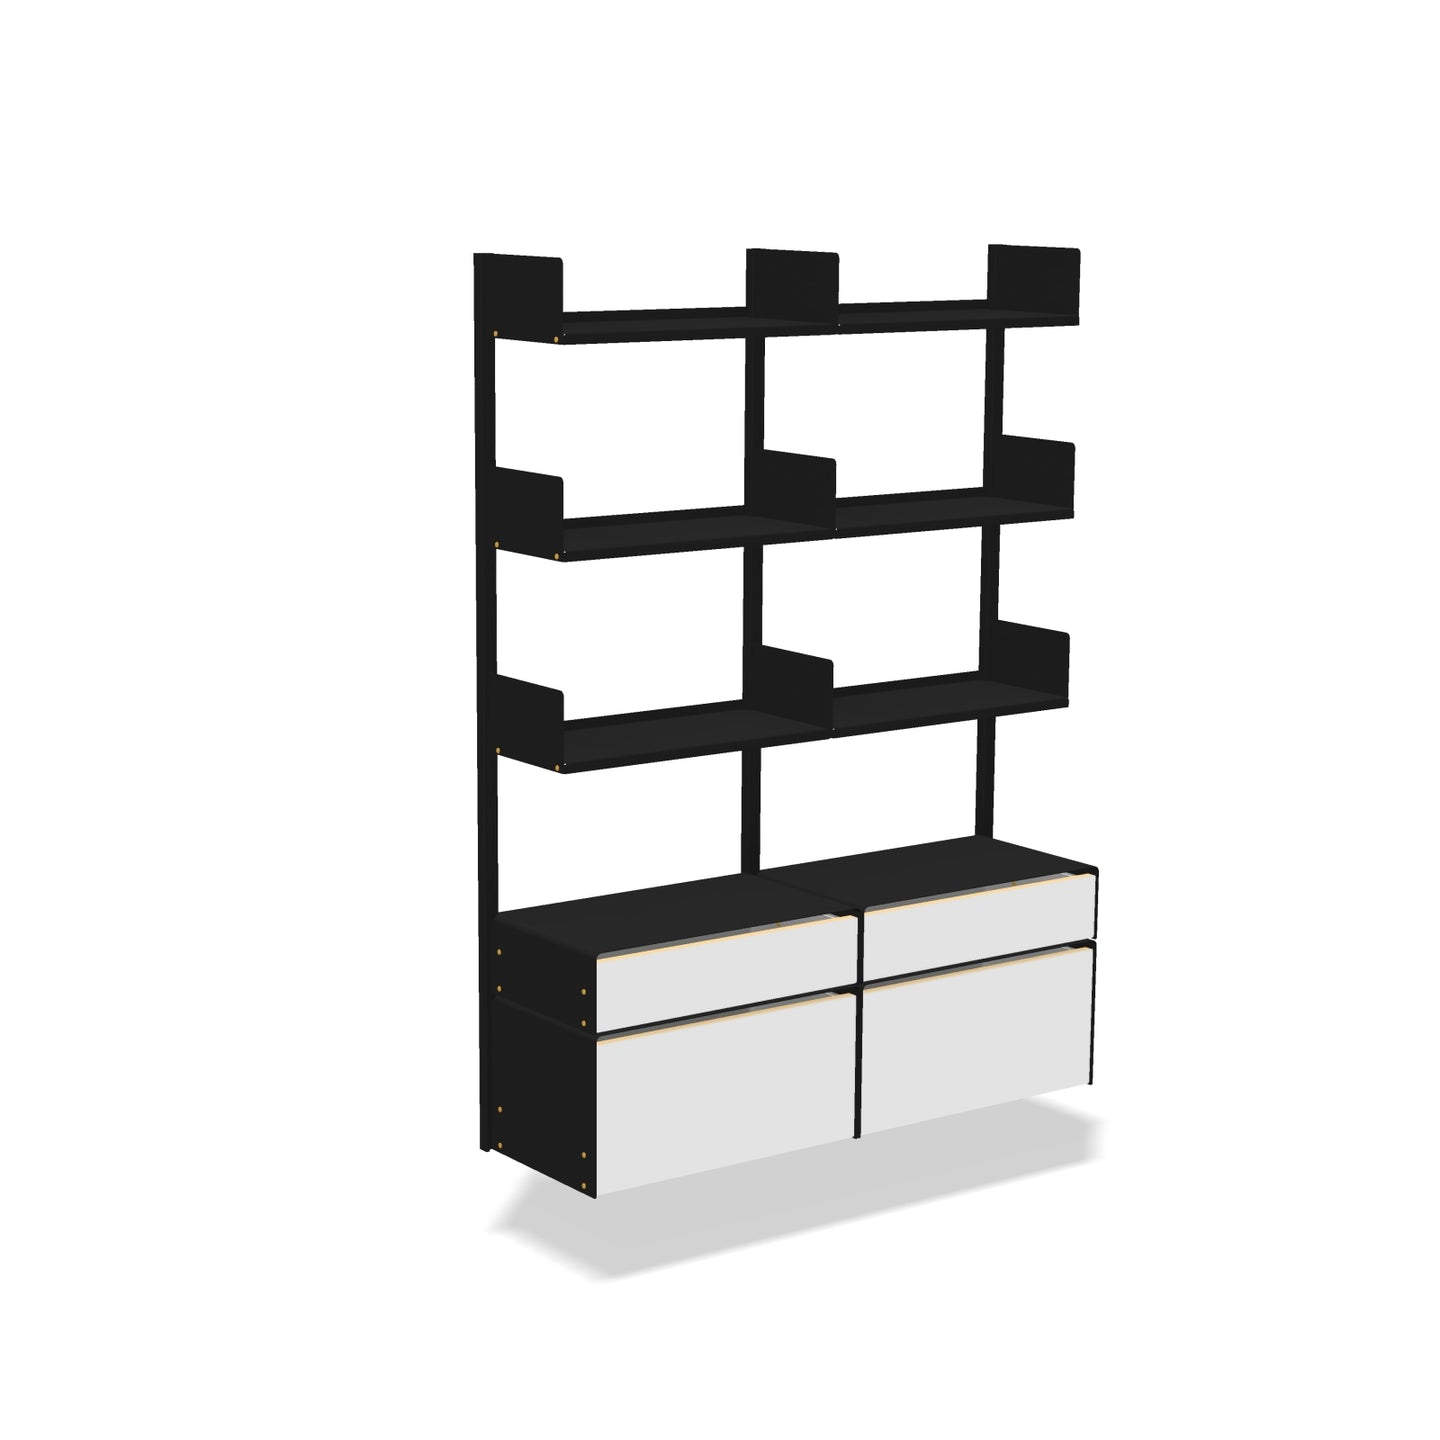 smpl. Shelves and Storage Kit - 3x2 Shelves + Cabinets